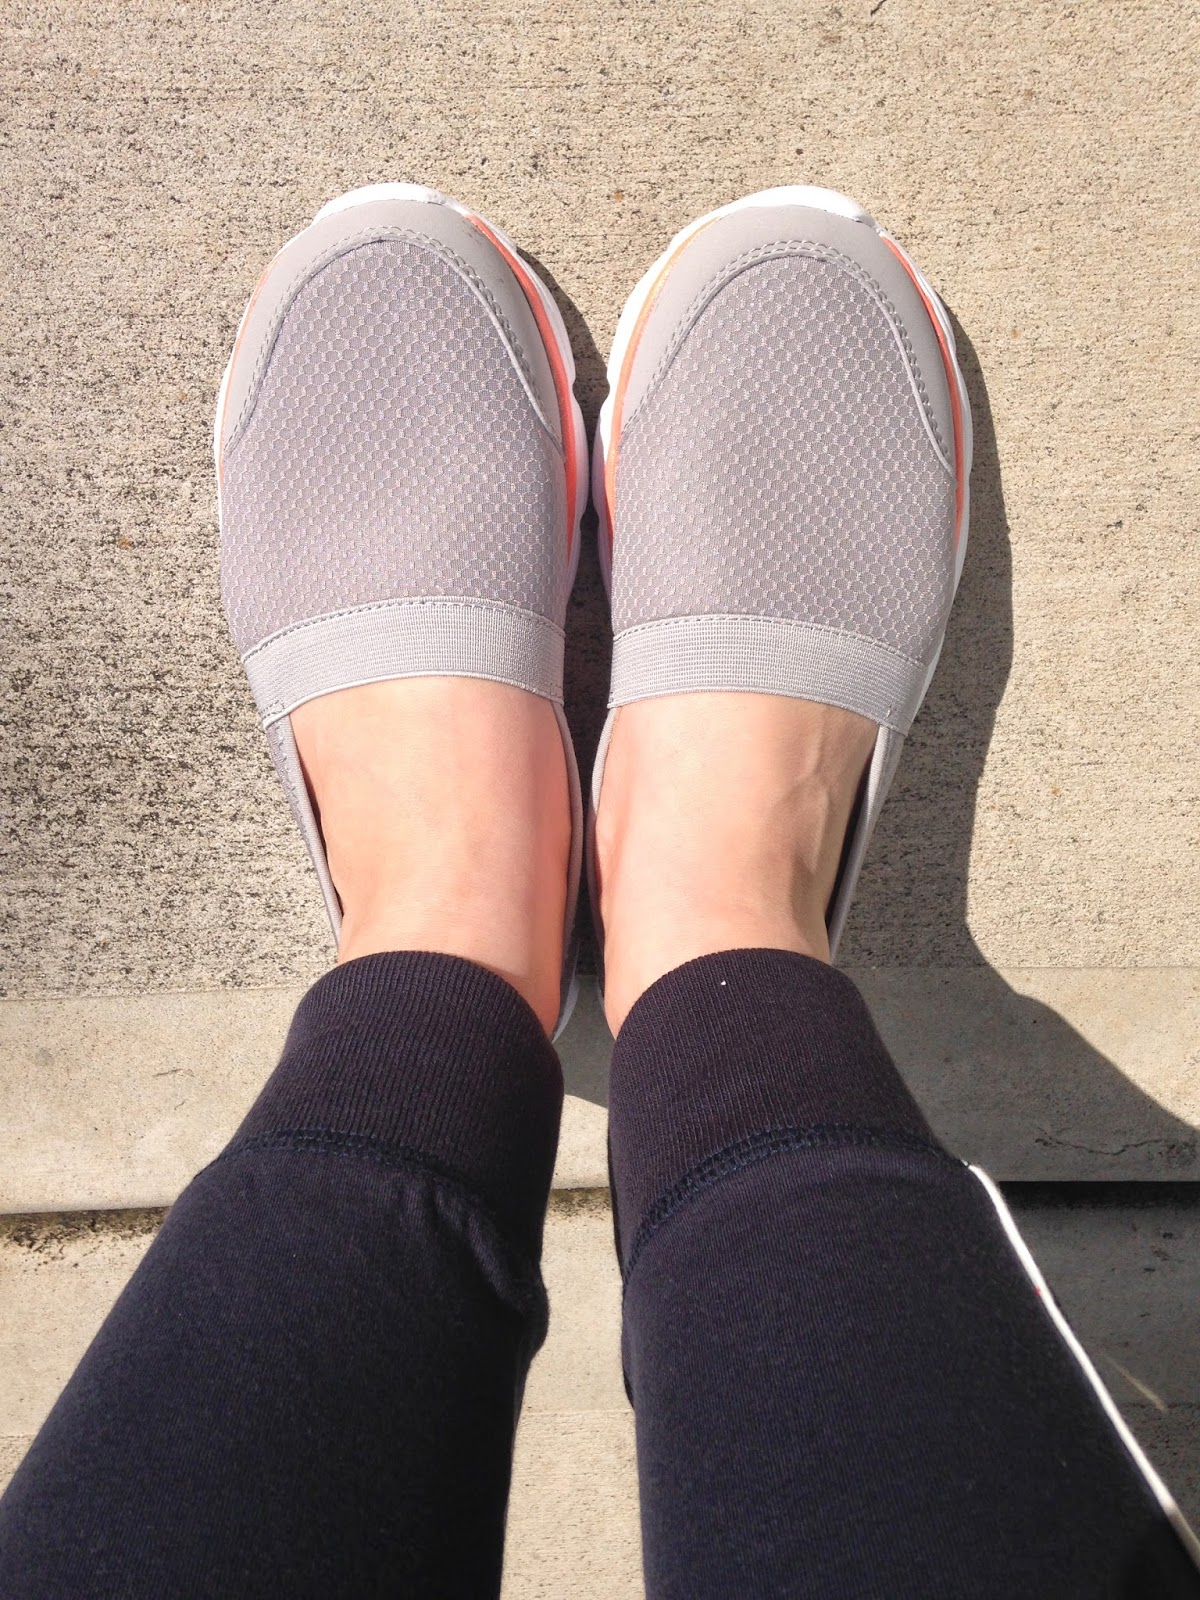 Comfortable slip-on shoes